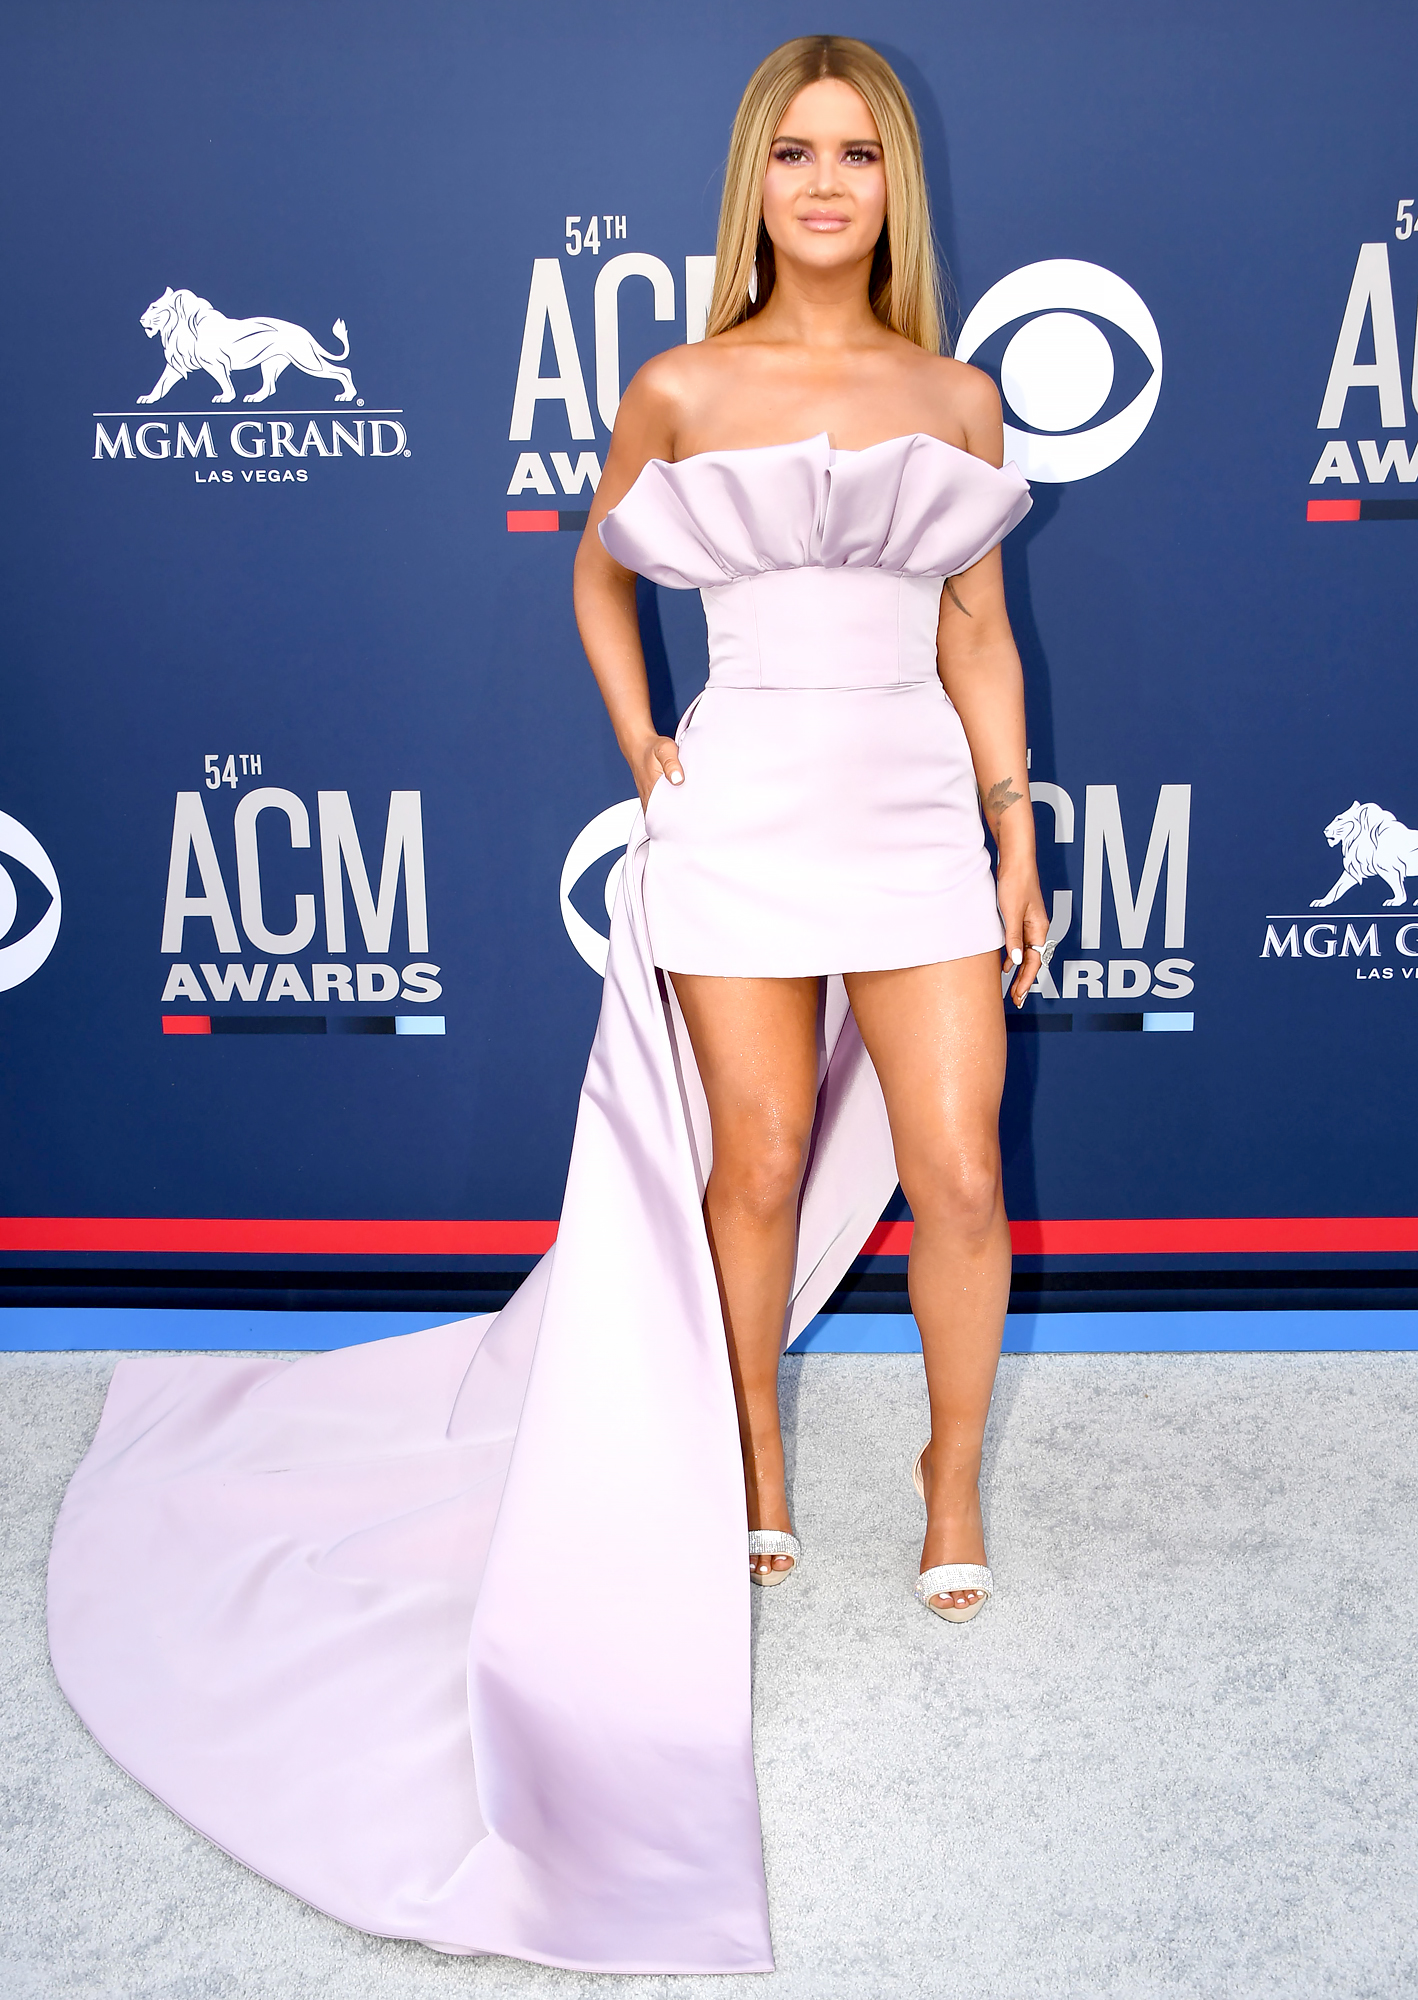 maren-morris-acms - Maren Morris arrives for the 54th Academy of Country Music Awards on April 7, 2019, at the MGM Grand Garden Arena in Las Vegas, Nevada.